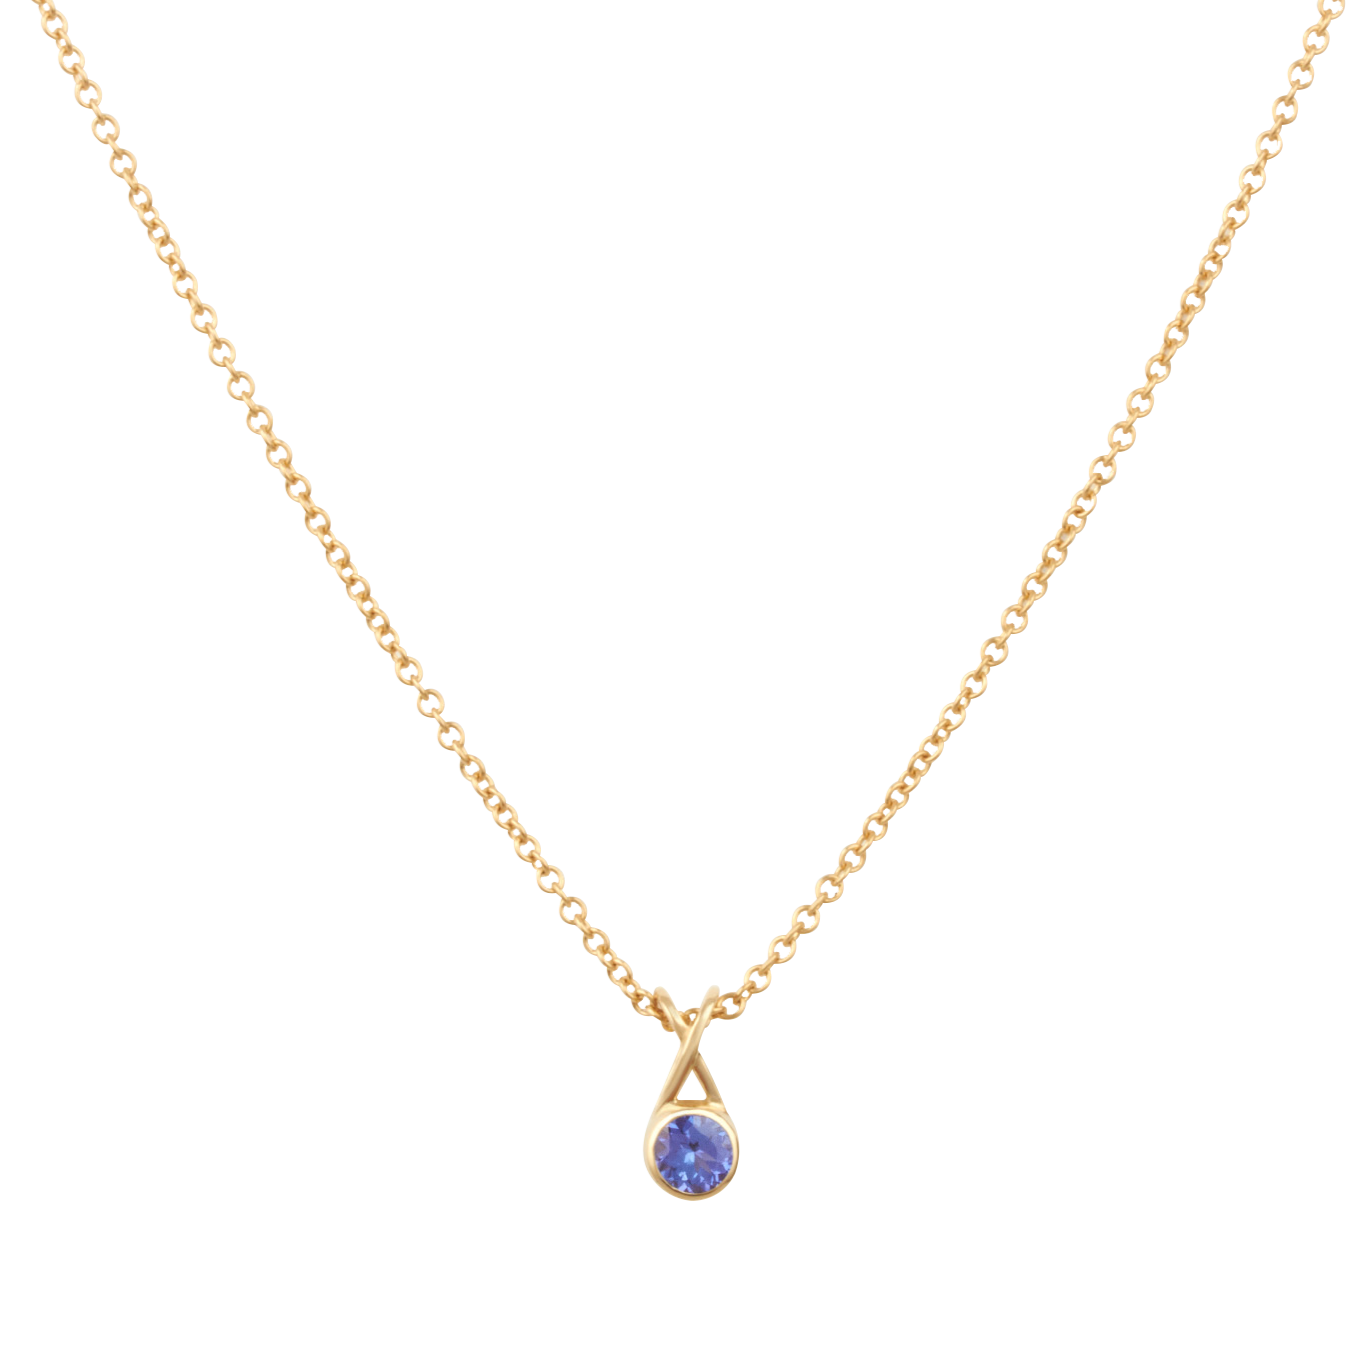 Mondoro Necklace - Tanzanite